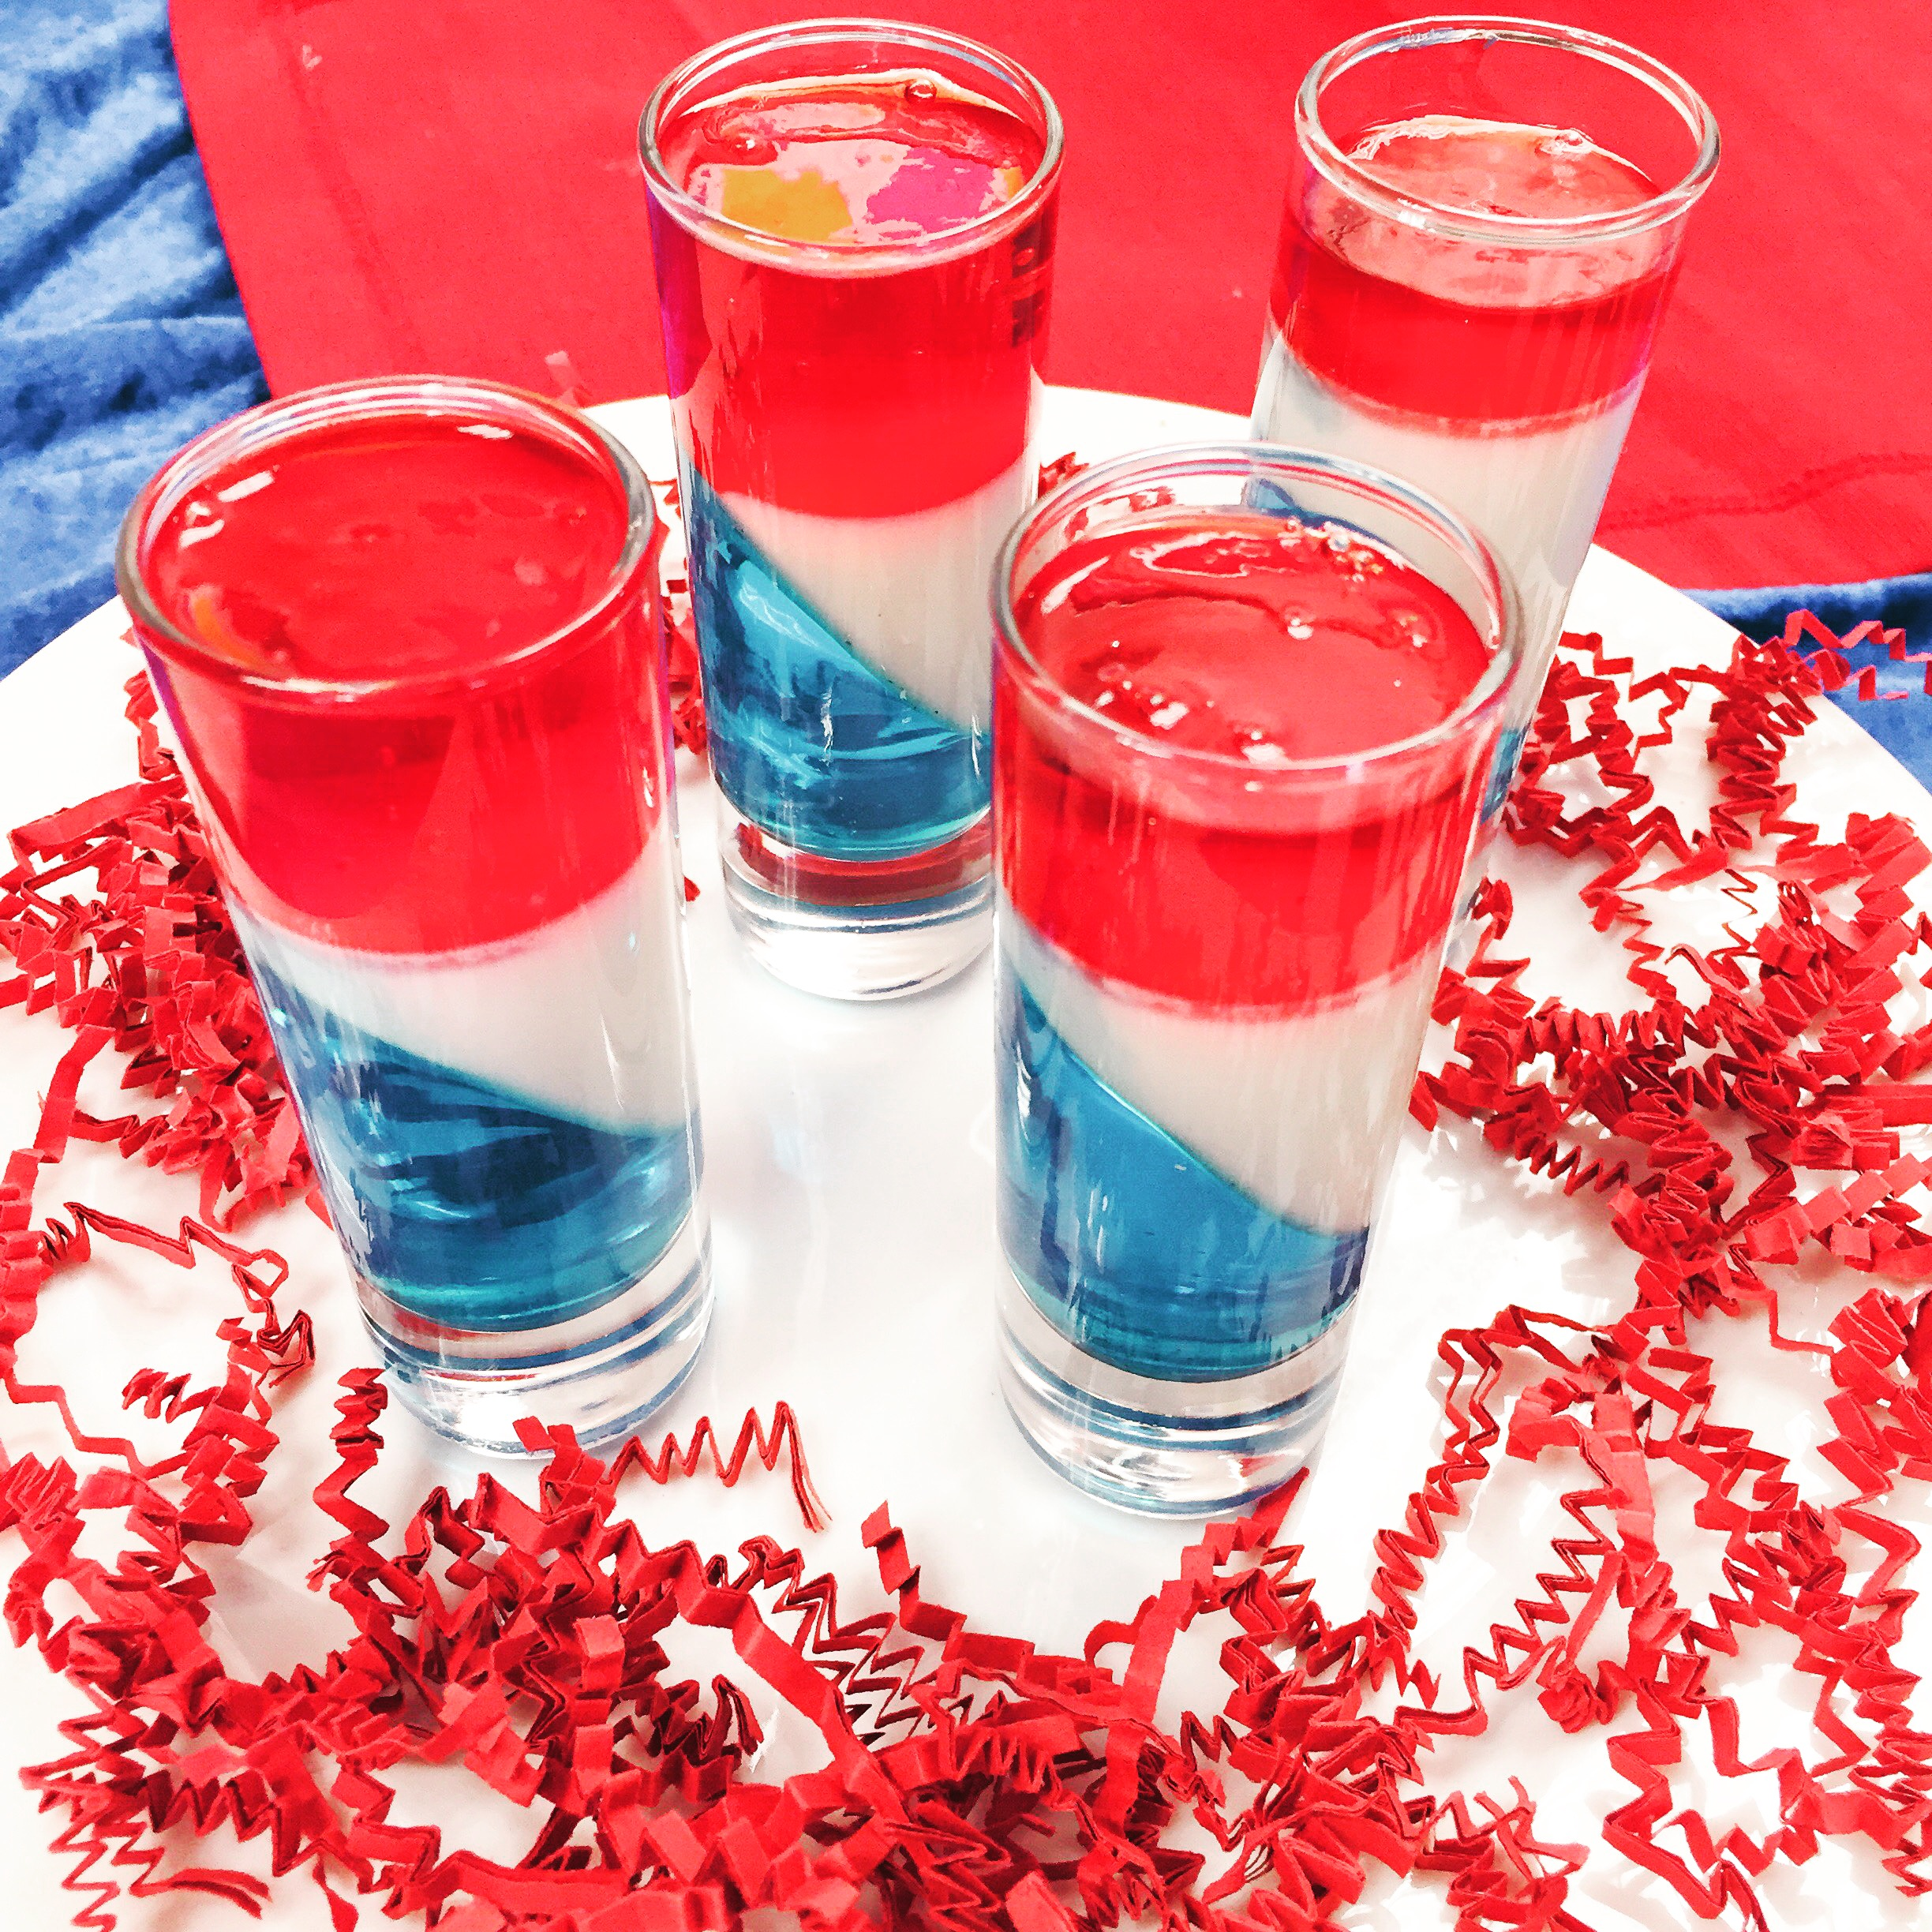 Patriotic JELL-O Shot for 4th of July- www.ChefShayna.com